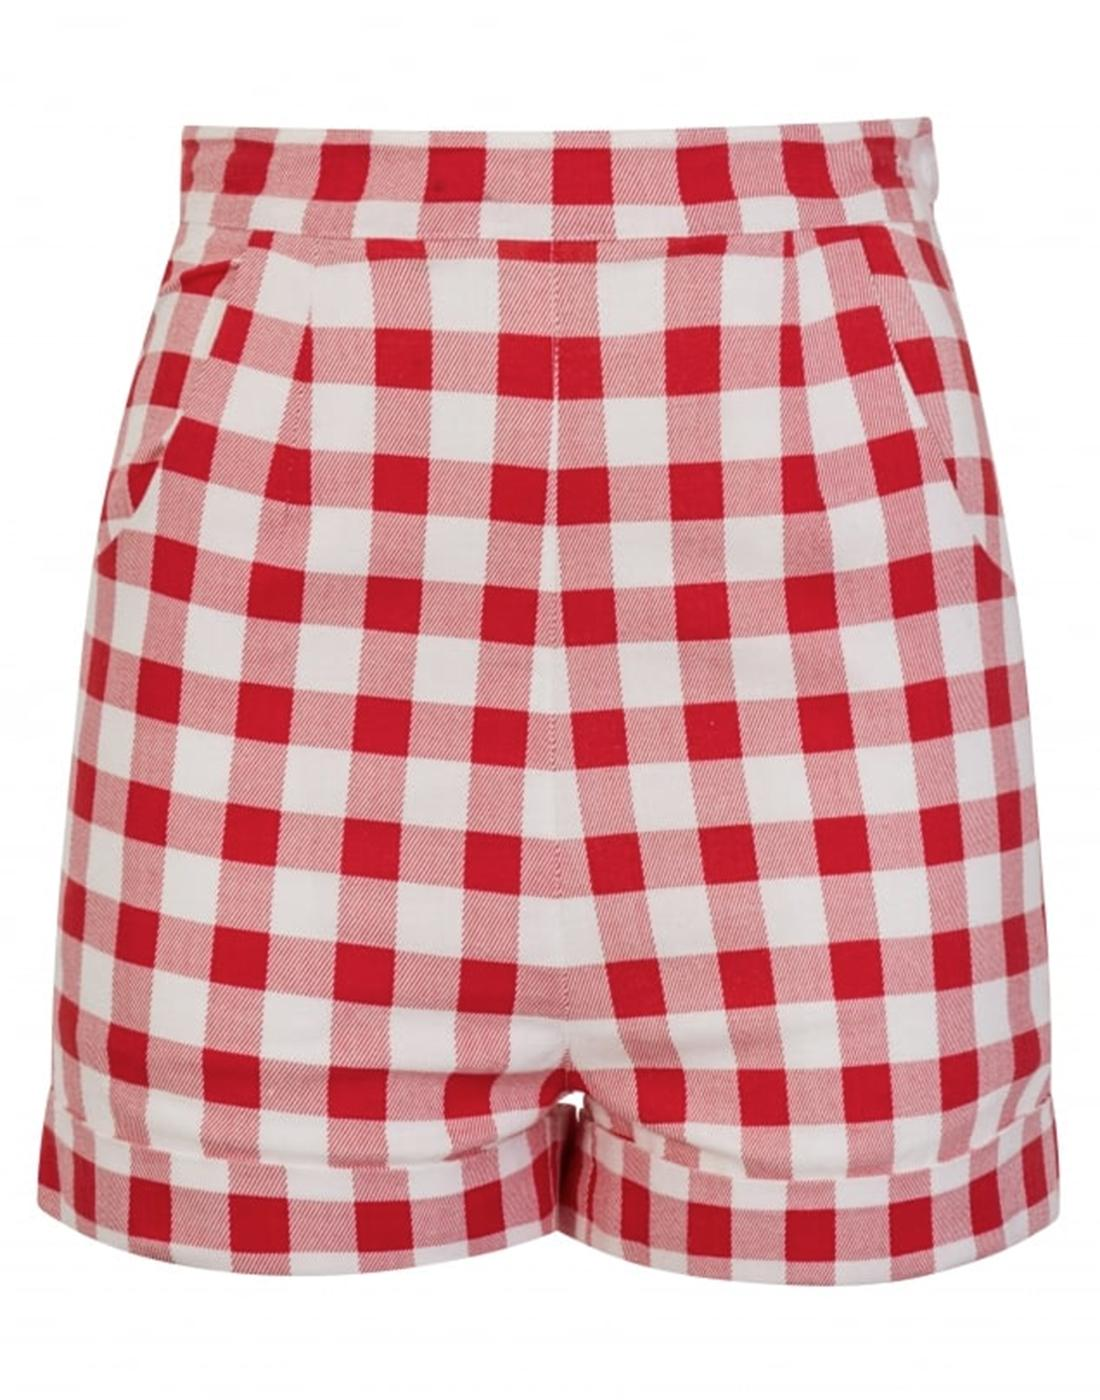 Ayana COLLECTIF Retro High Waist Gingham Shorts